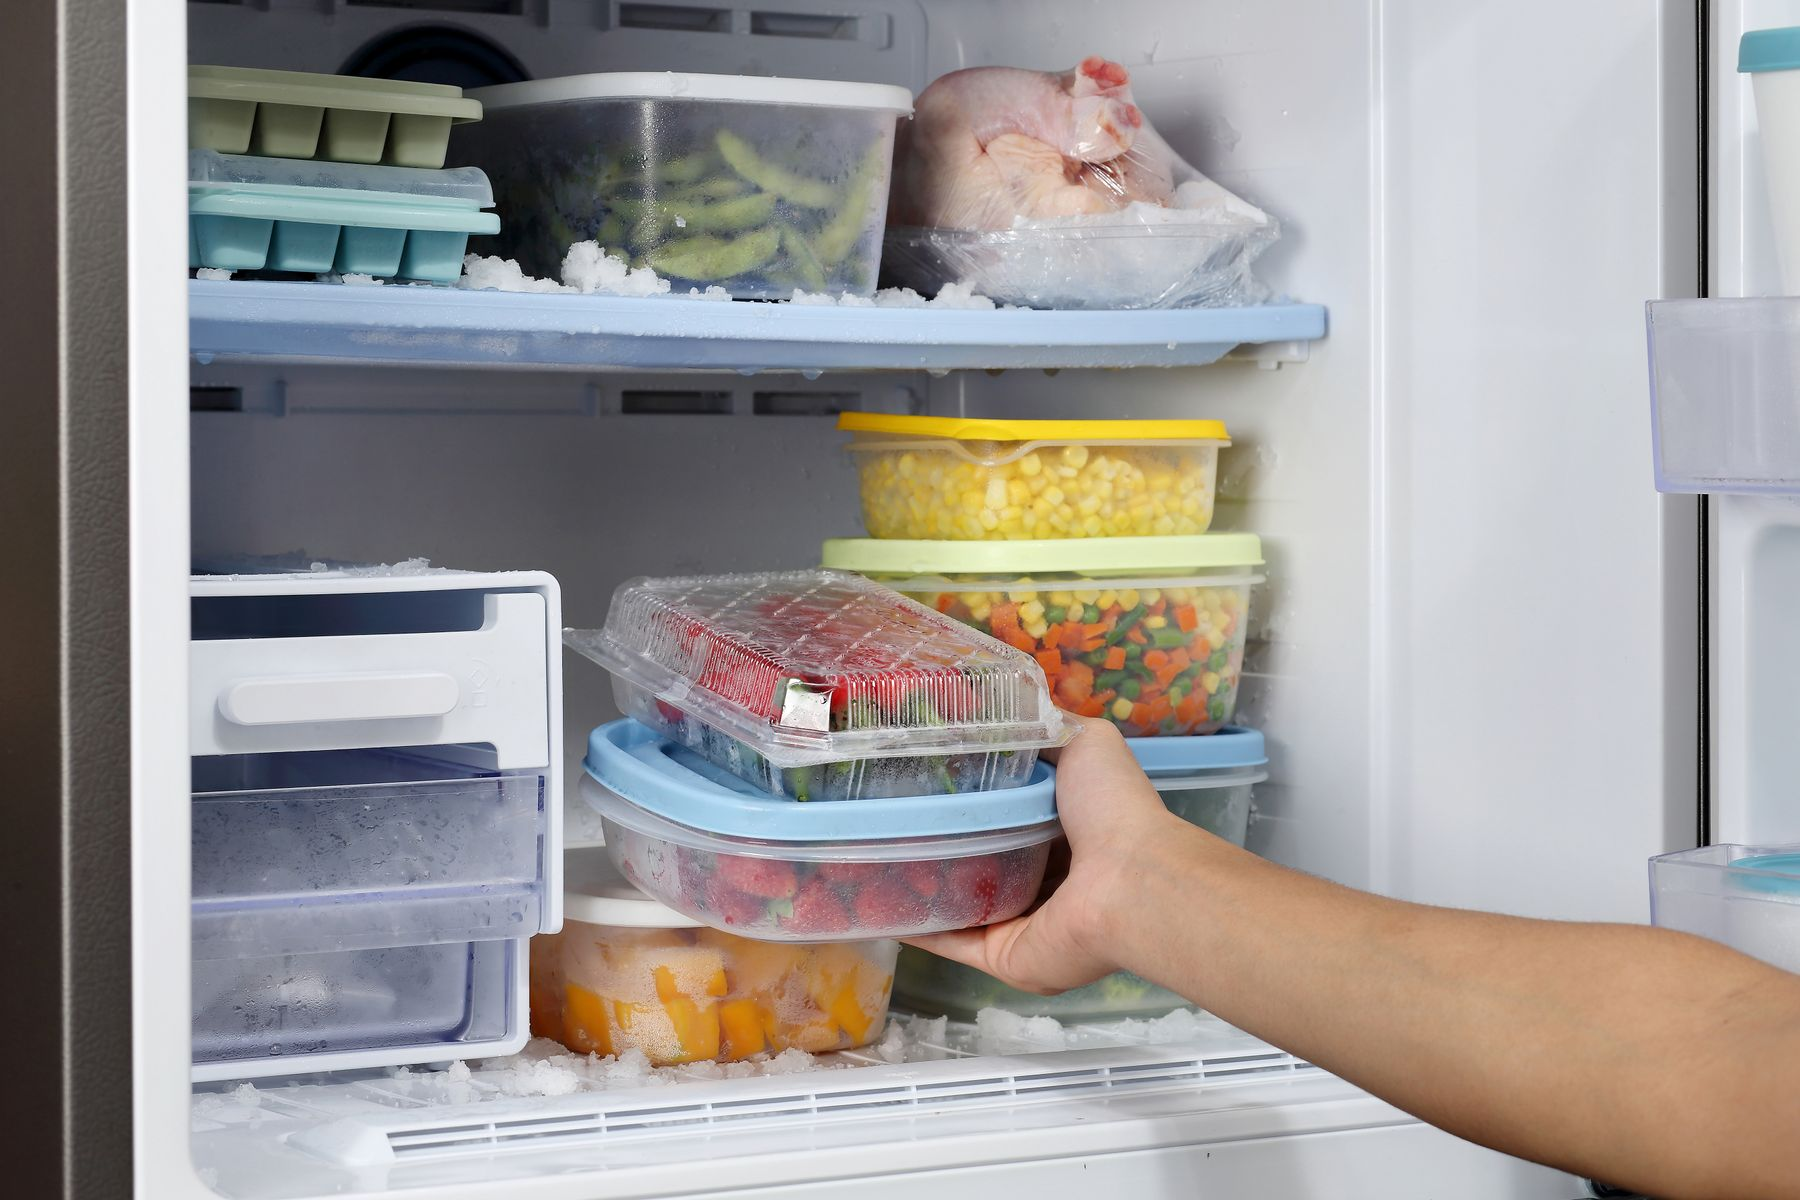 Step 2: person removing food from fridge